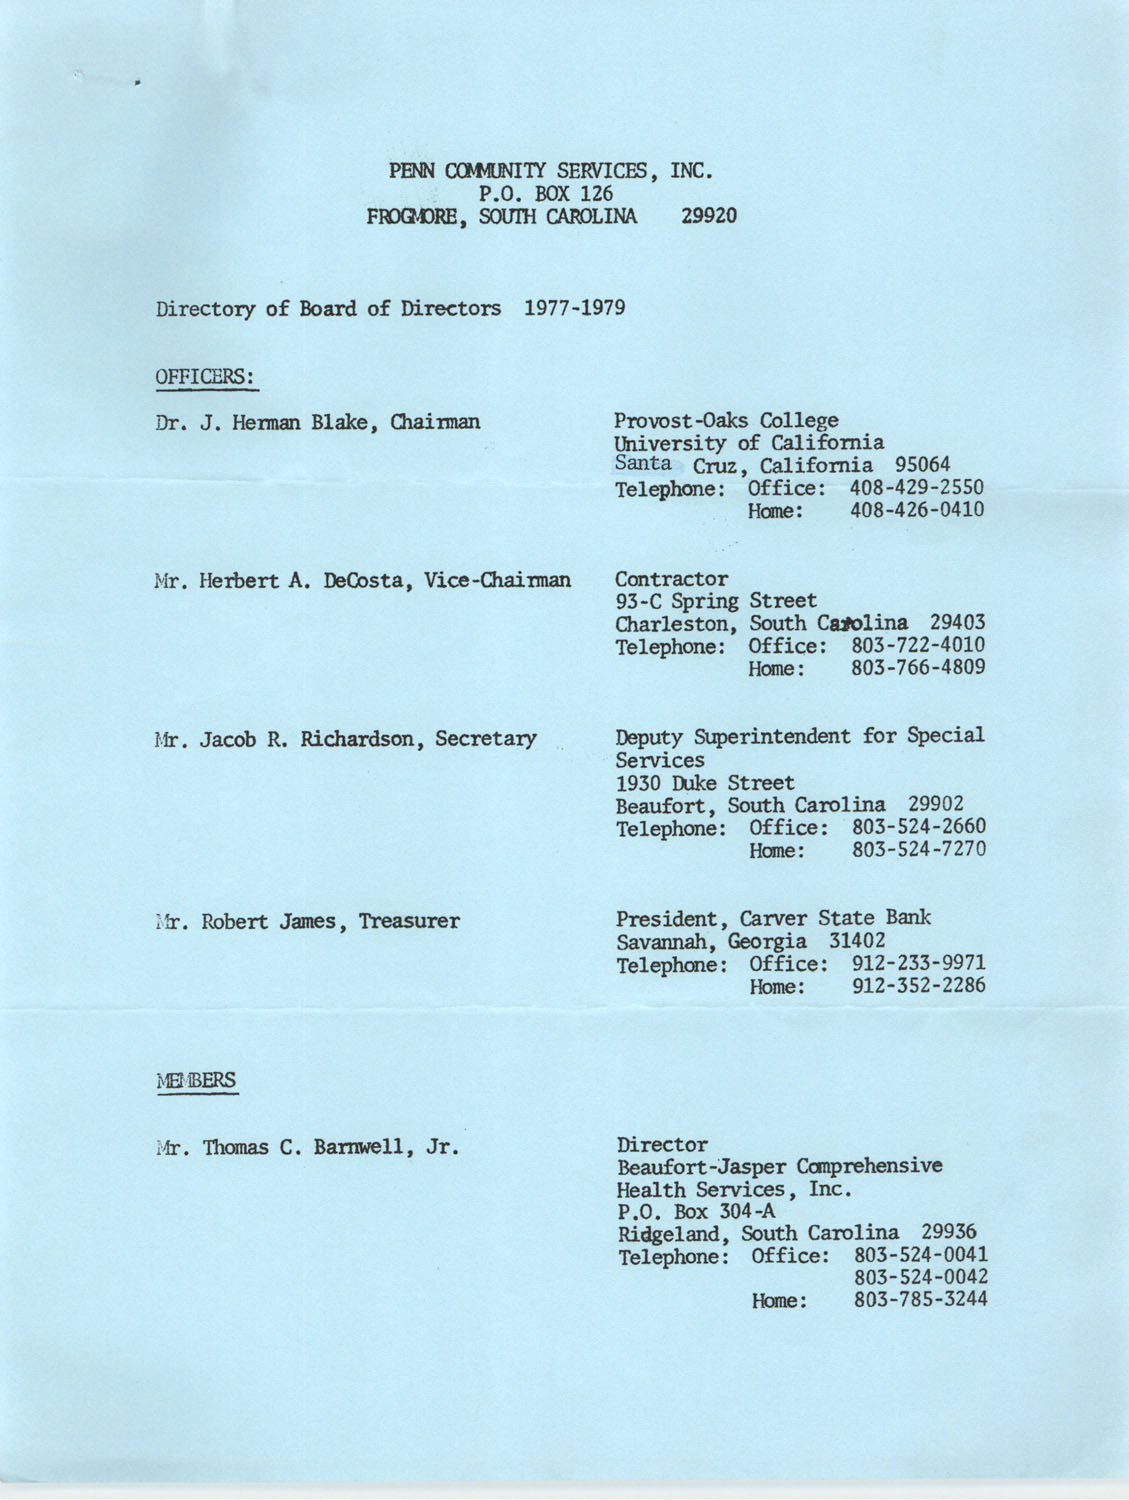 Directory of Board of Trustees, Penn Community Services, 1977-1979